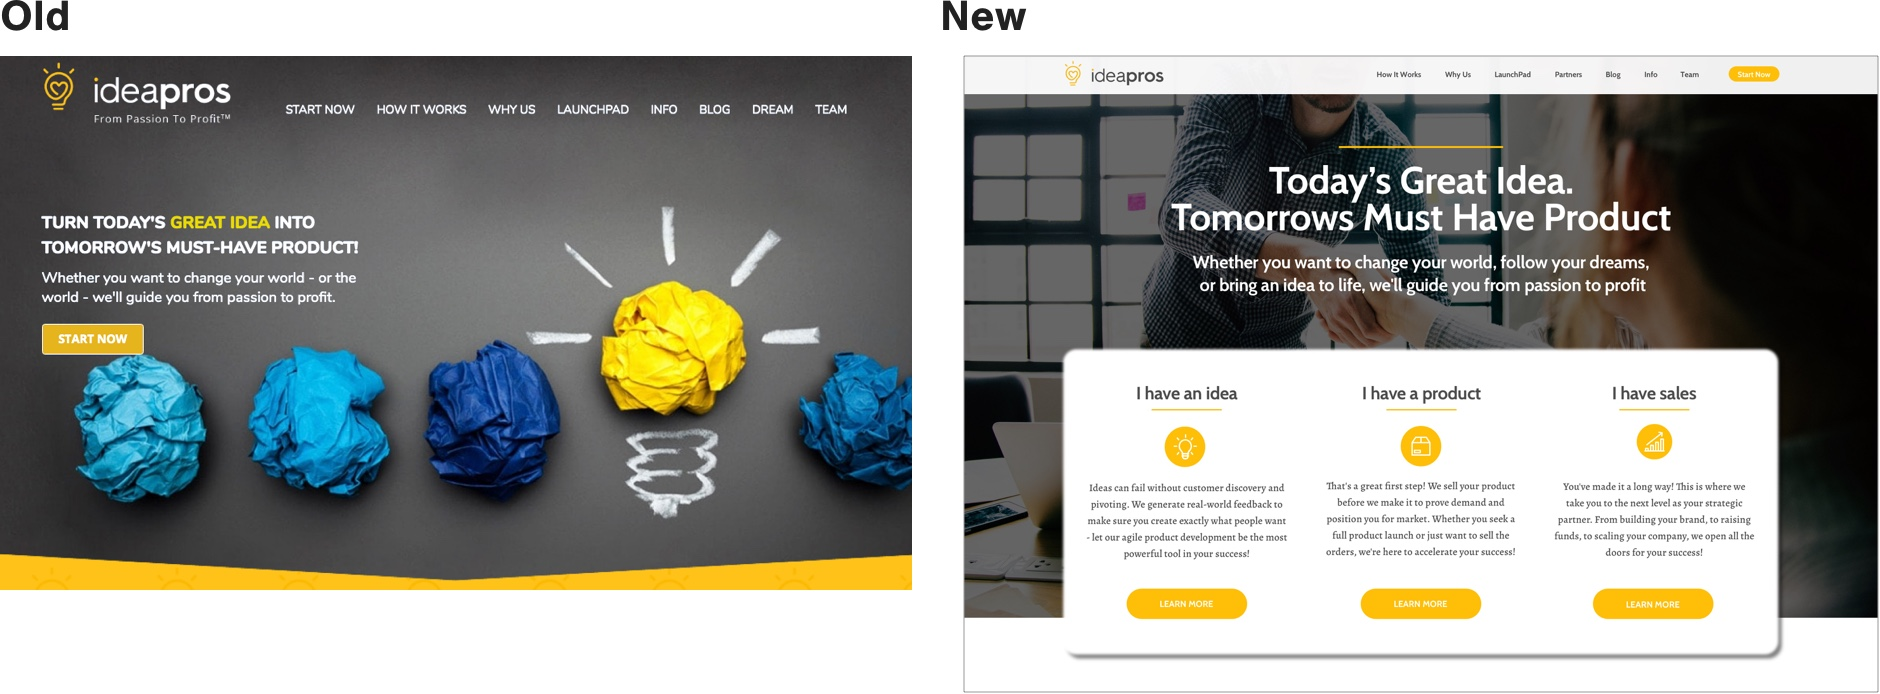 IdeaPros Home Page Design Comparison New and Old